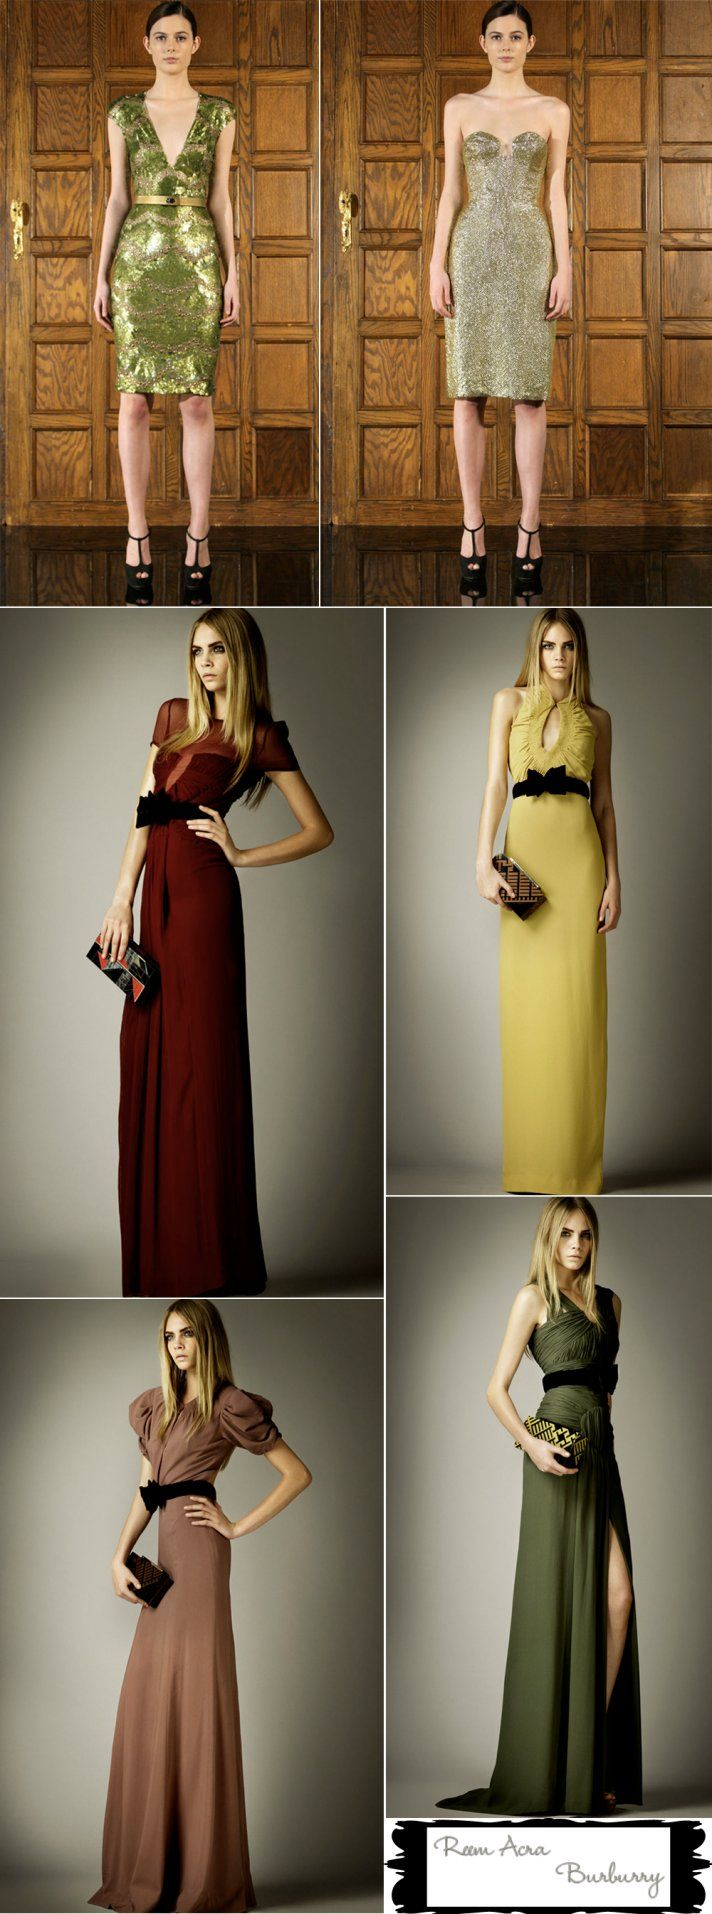 Fall colored bridesmaid dresses vosoi 23 best bridesmaids dresses images on pinterest marriage ombrellifo Gallery